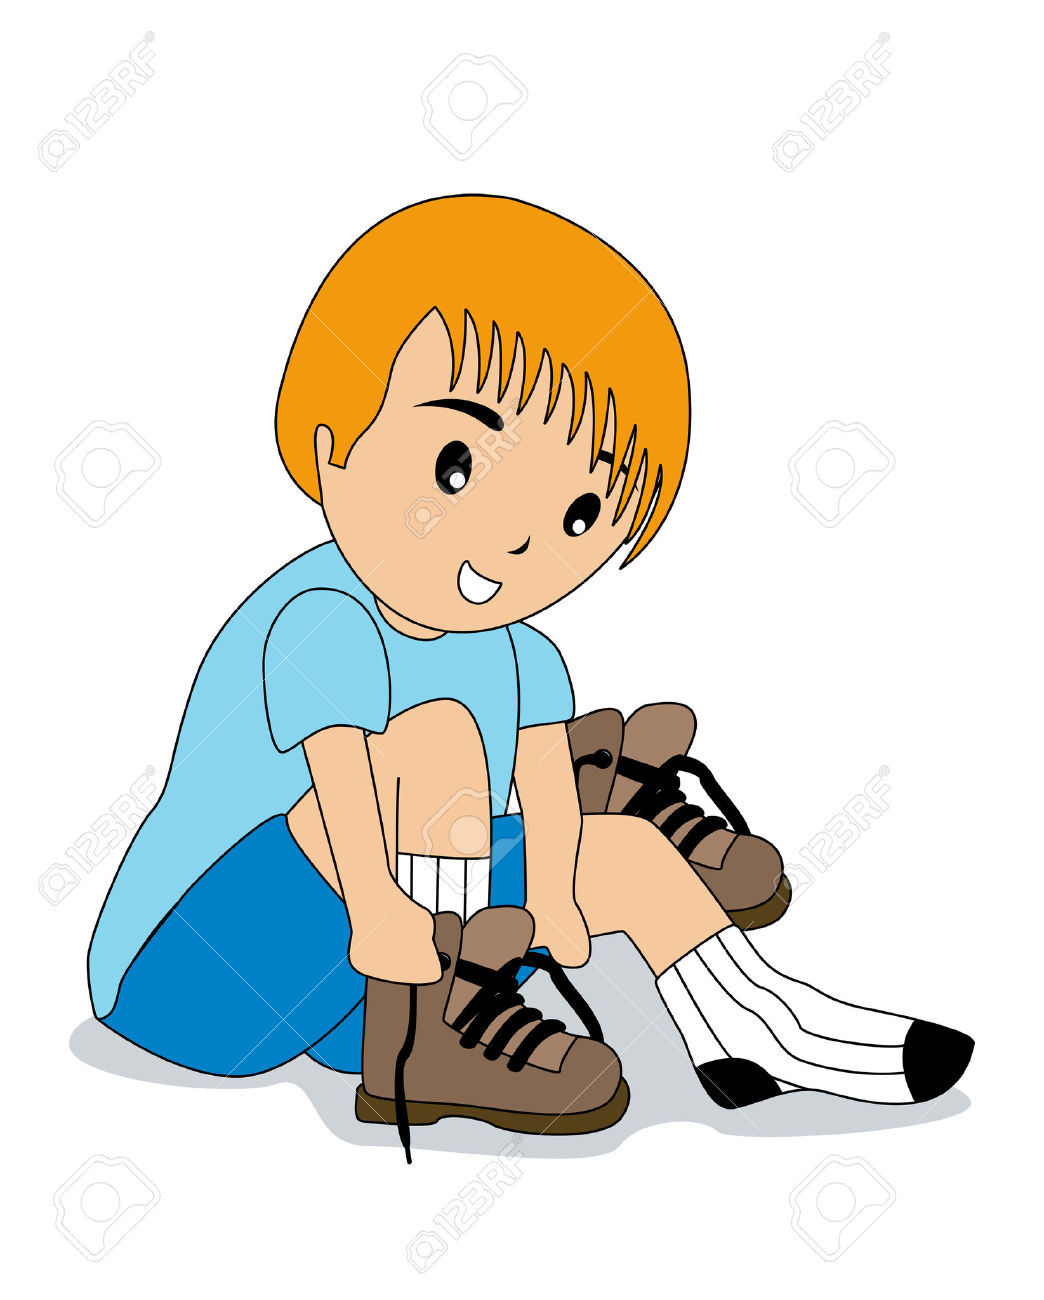 Put on socks and shoes kids clipart graphic library download Put On Socks And Shoes Clipart graphic library download